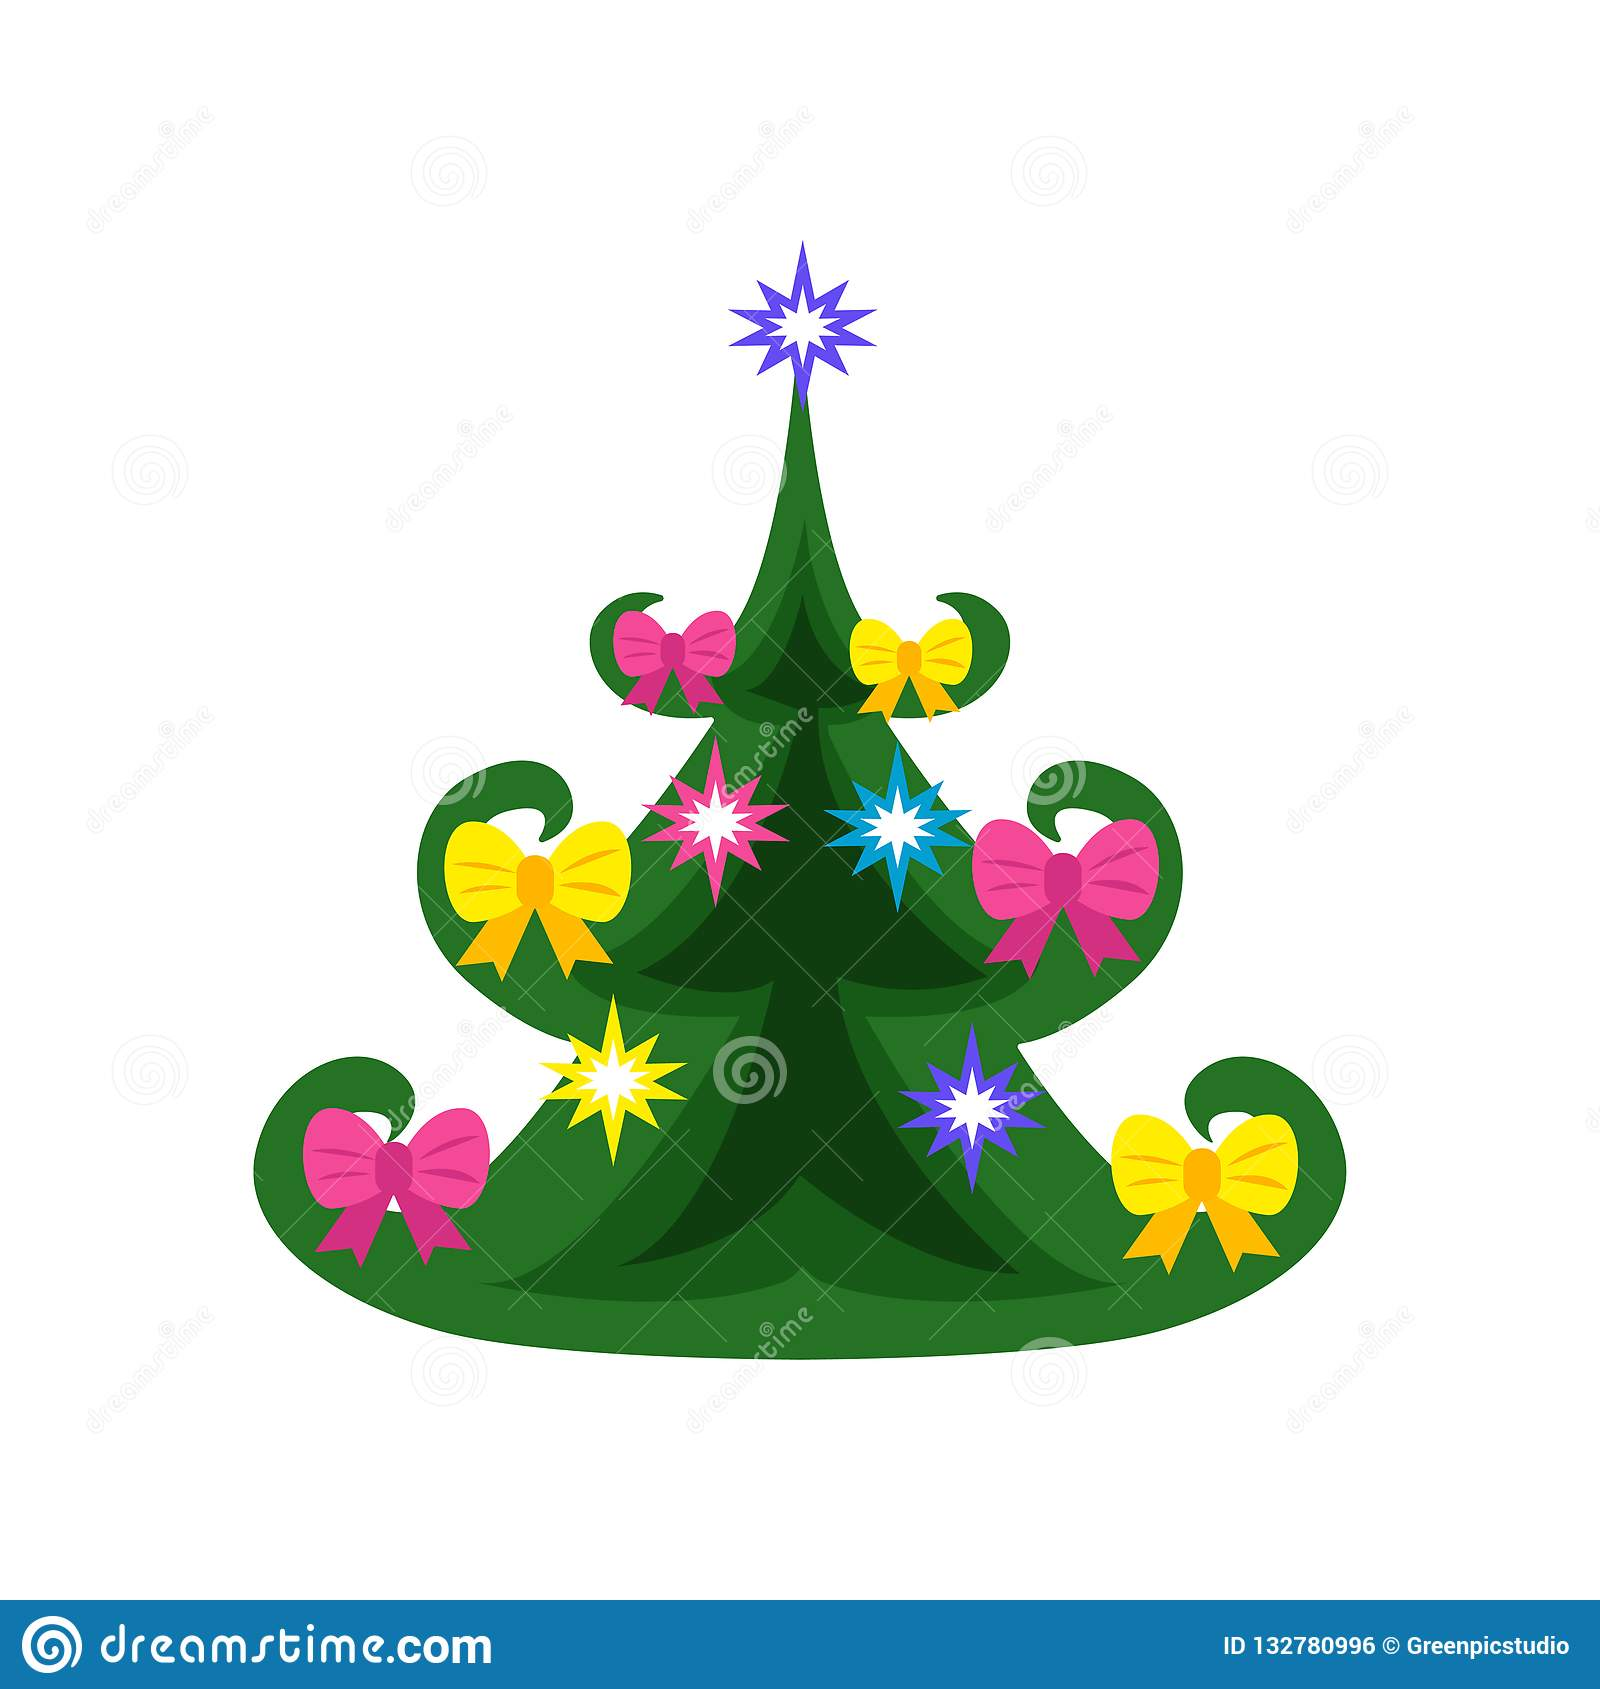 Colorful Christmas Tree Decorations.The Symbol Of The New Year A Beautiful Colorful Green